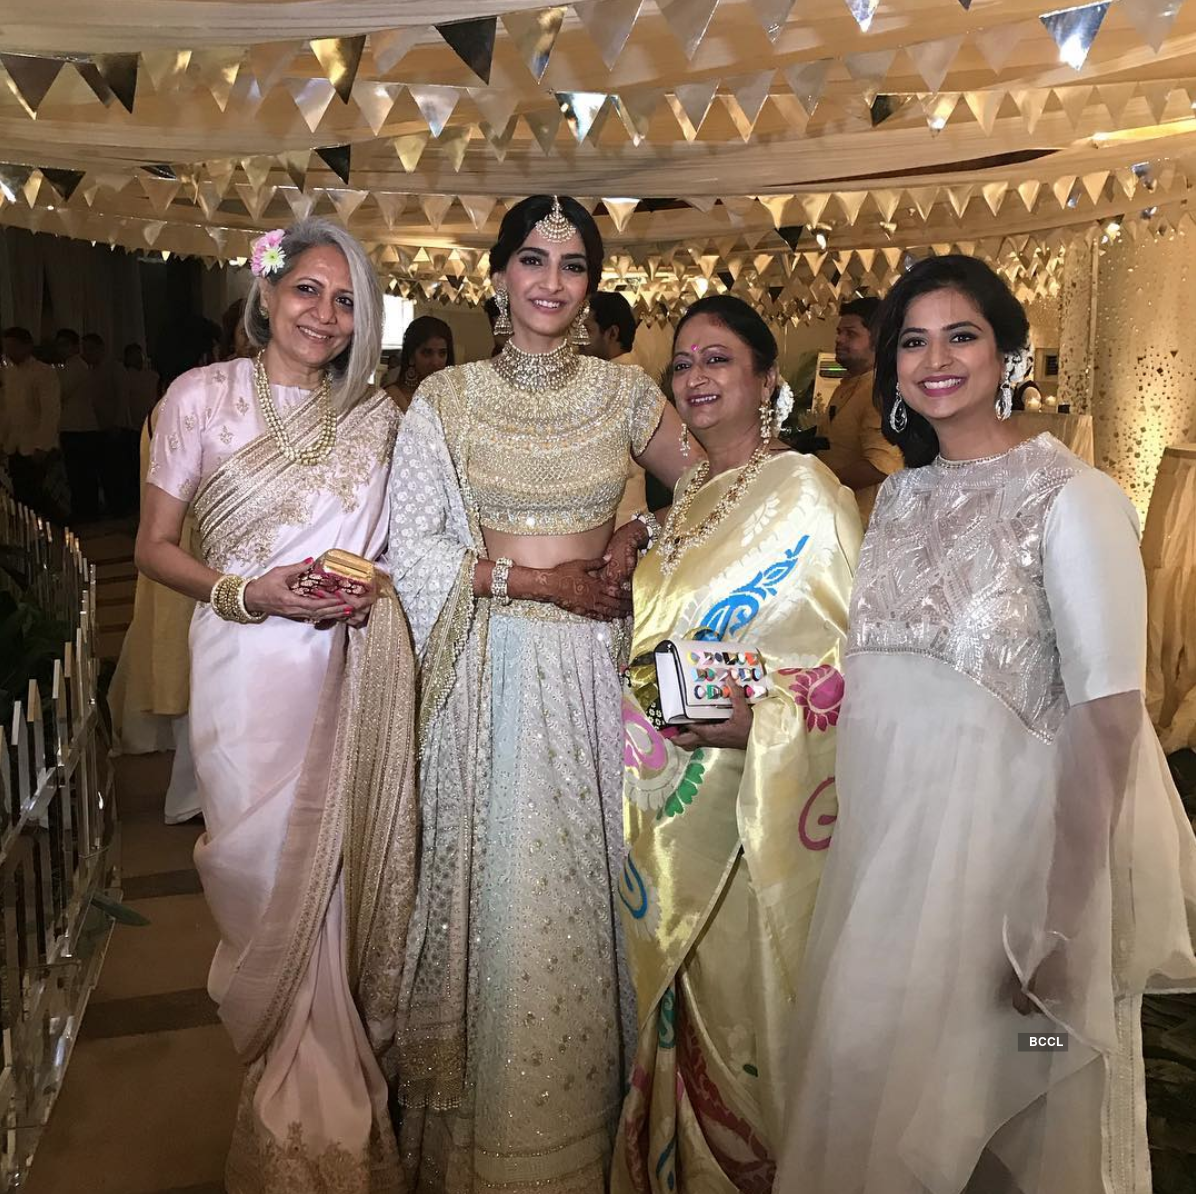 Inside pictures of Sonam Kapoor & Anand Ahuja's glittery sangeet ceremony